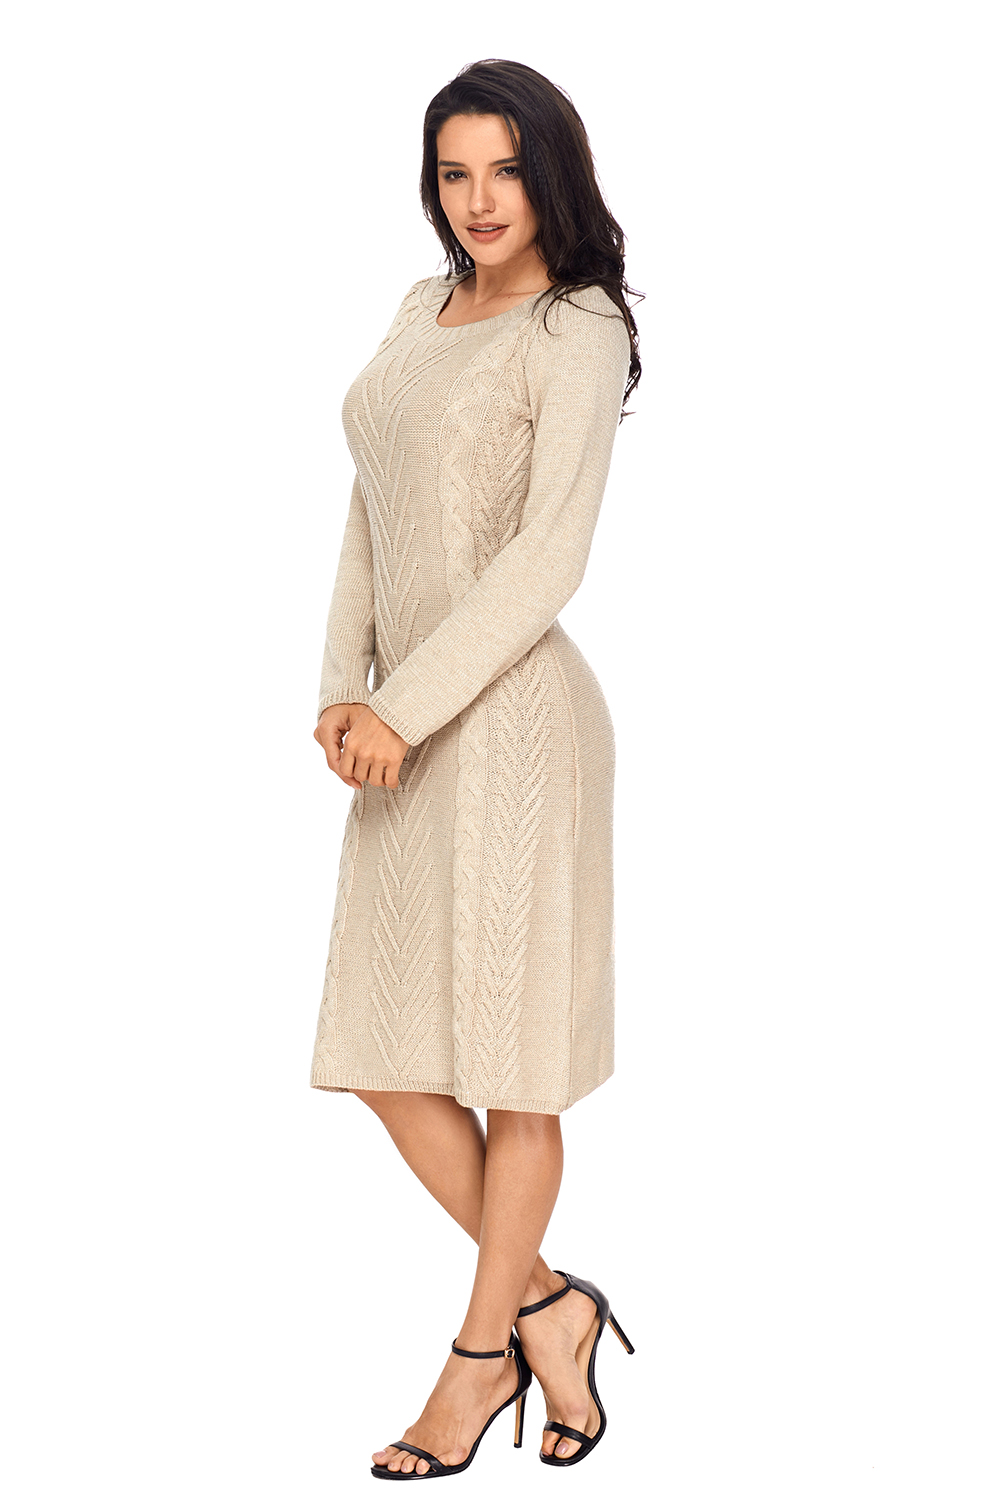 BY27772-16 Khaki Women's Hand Knitted Sweater Dress